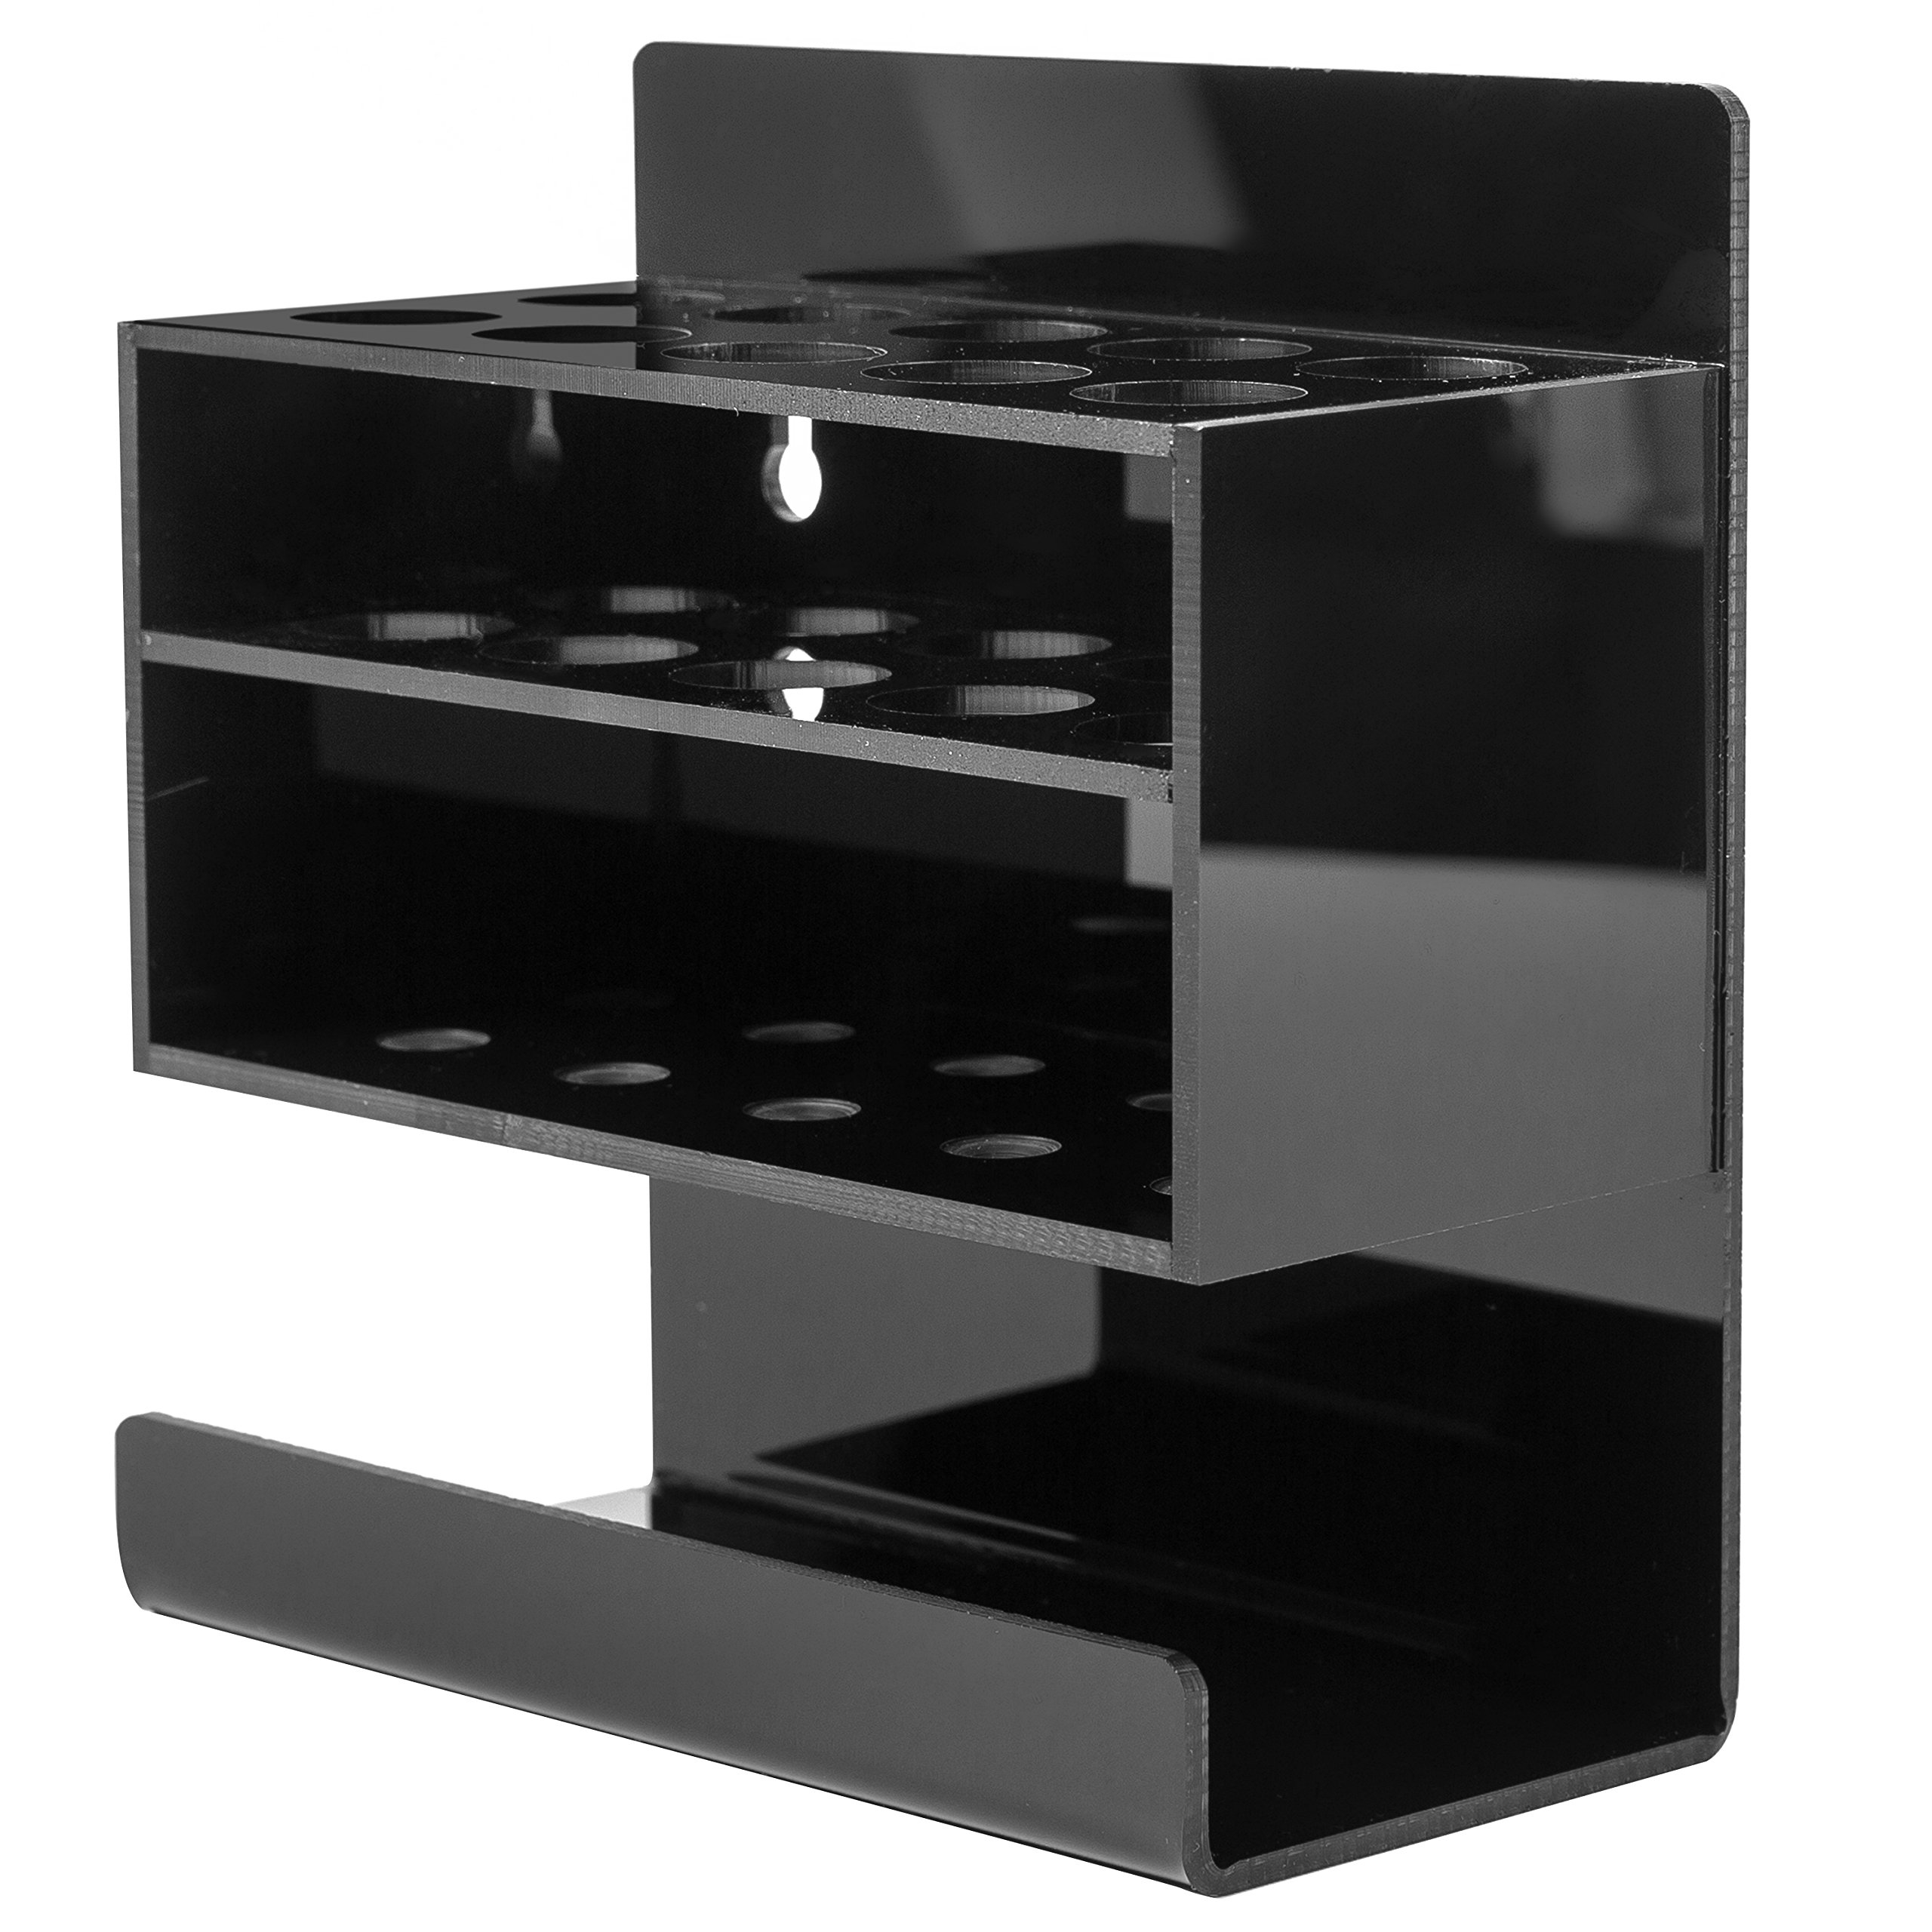 MyGift Wall-Mounted 2-Tier Black Acrylic 10-Slot Dry Erase Whiteboard Marker and Eraser Holder Stand by MyGift (Image #3)